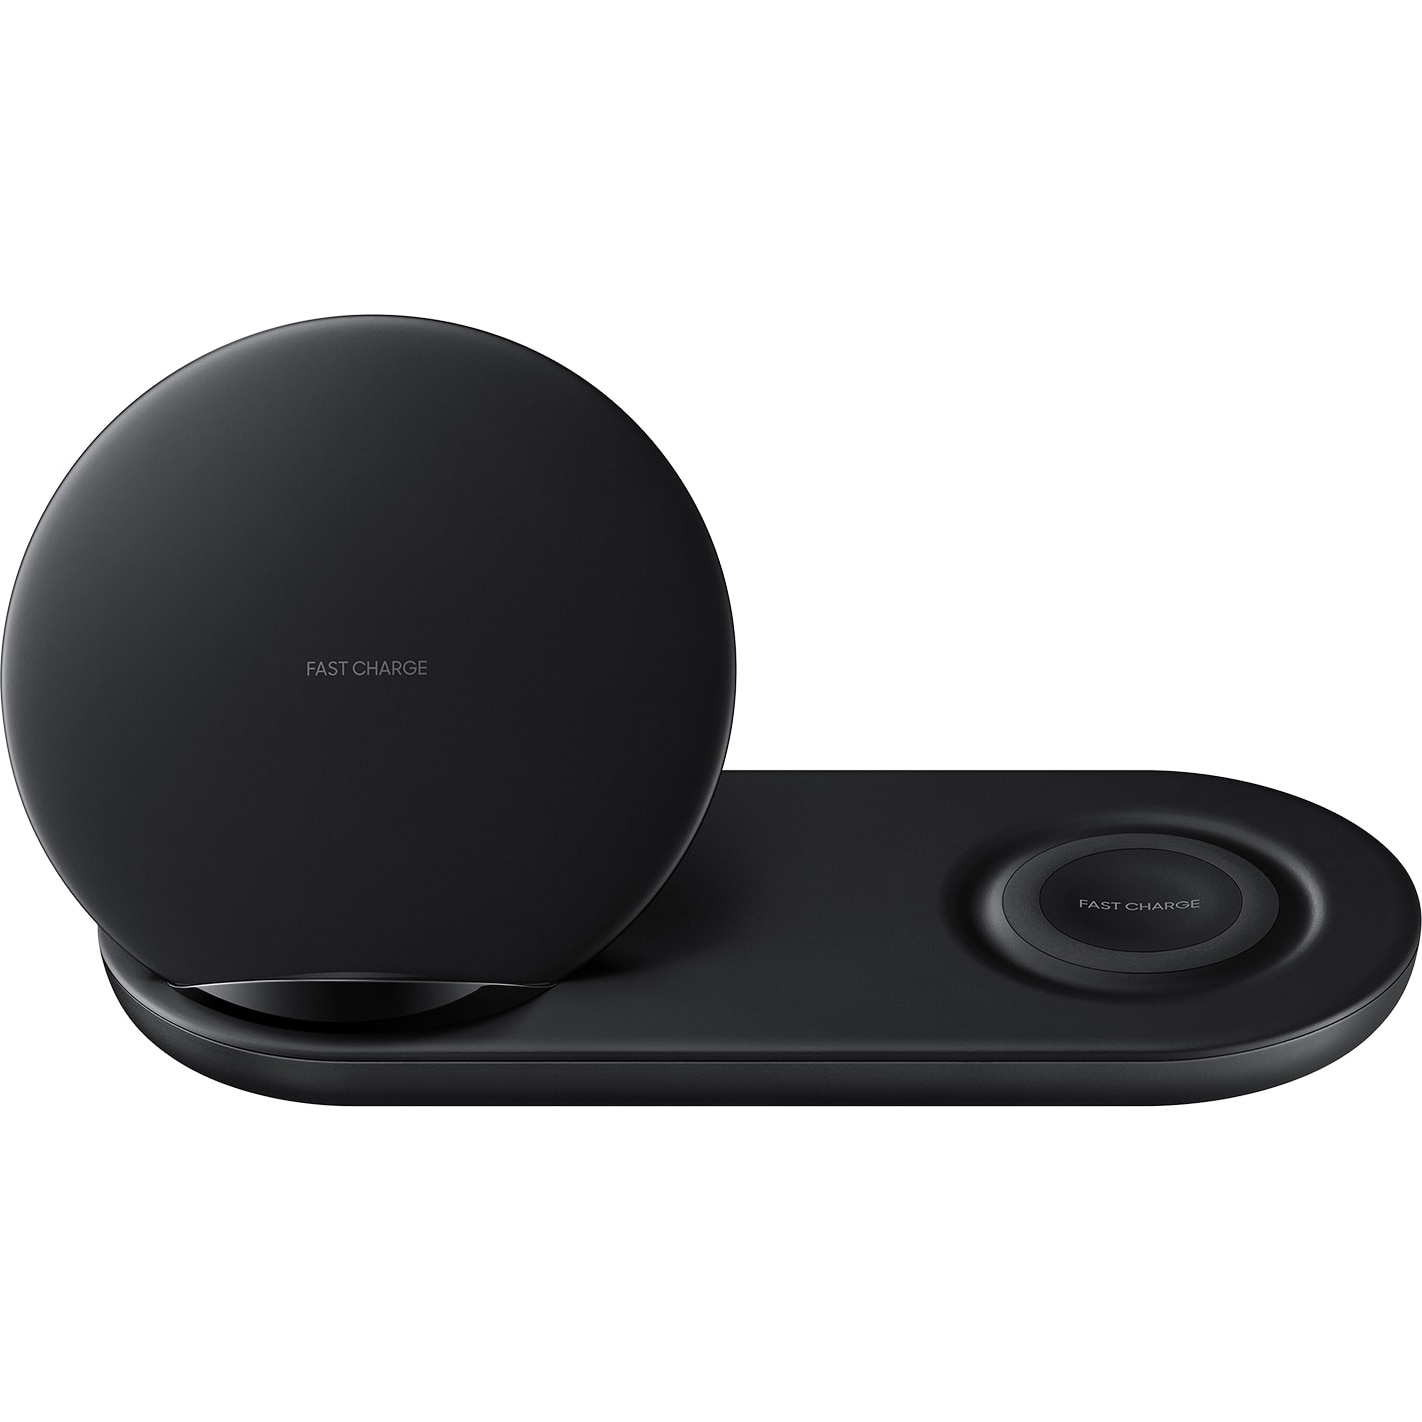 Fotografie Incarcator wireless Samsung Wireless Charger Duo, Incarcator inclus, Black